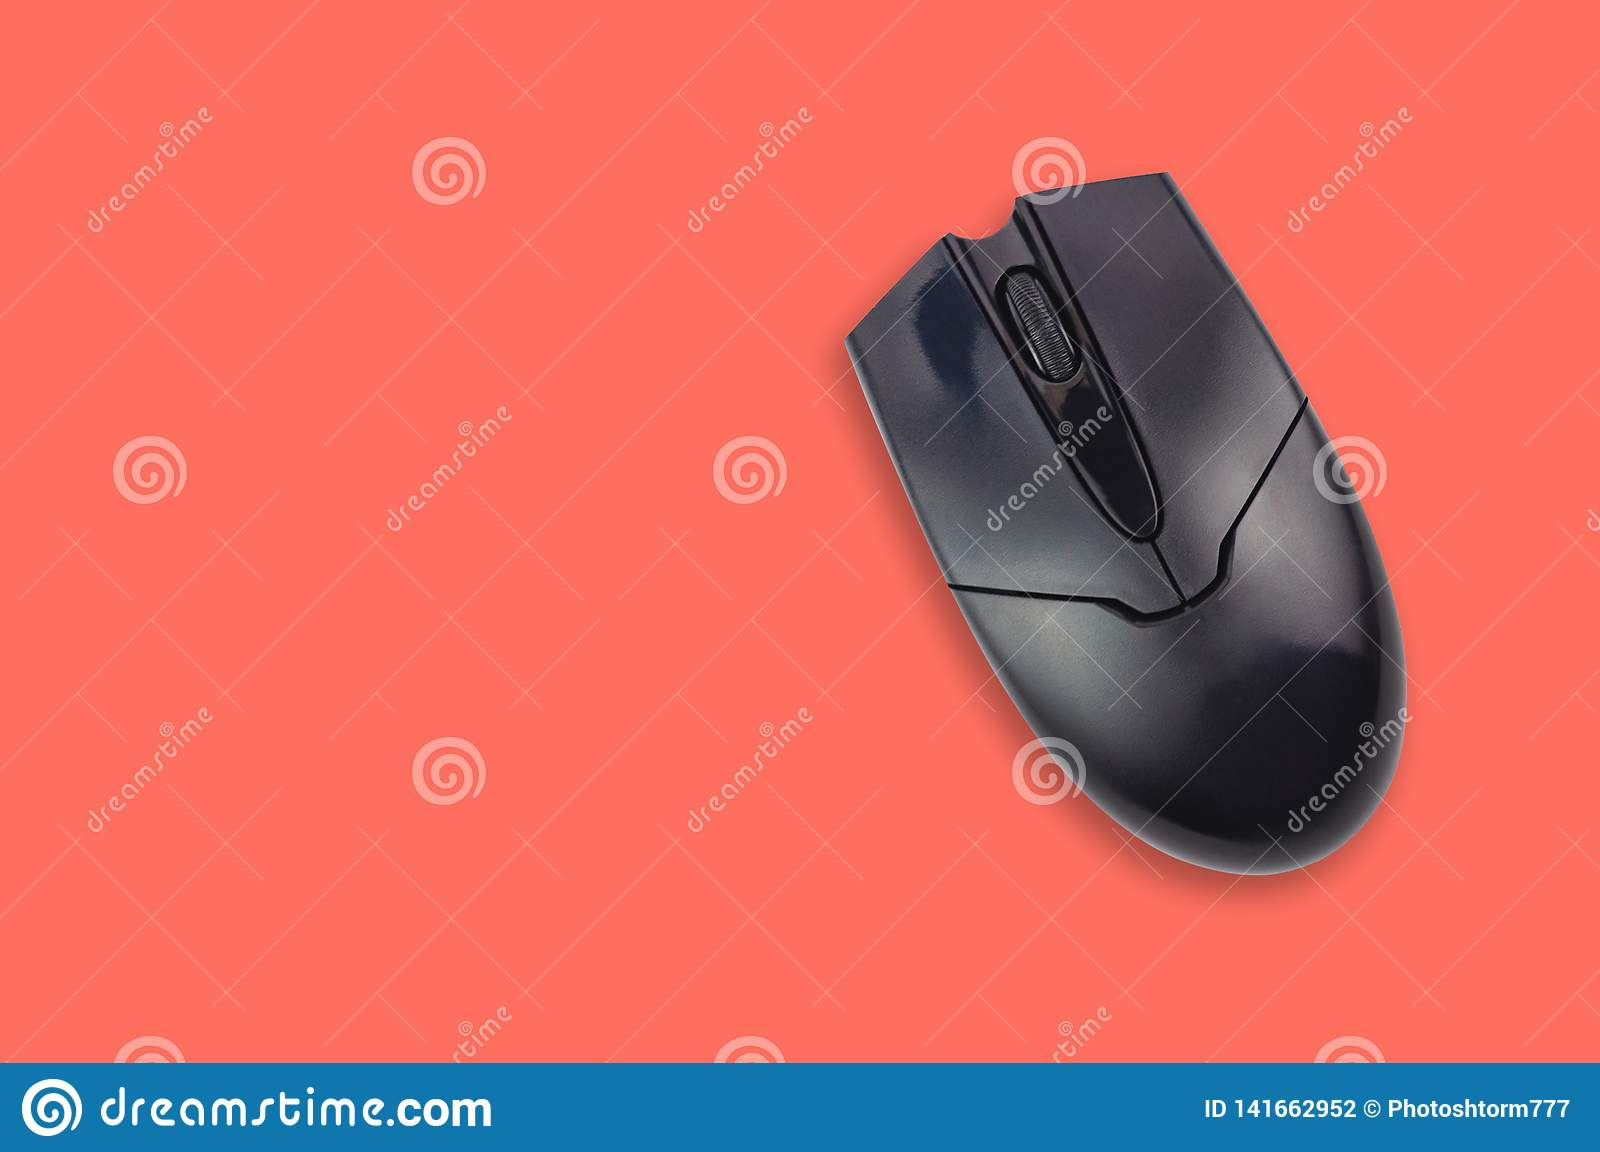 Single black plastic optical computer mouse on office table coral color. Top view. Copy space for your text